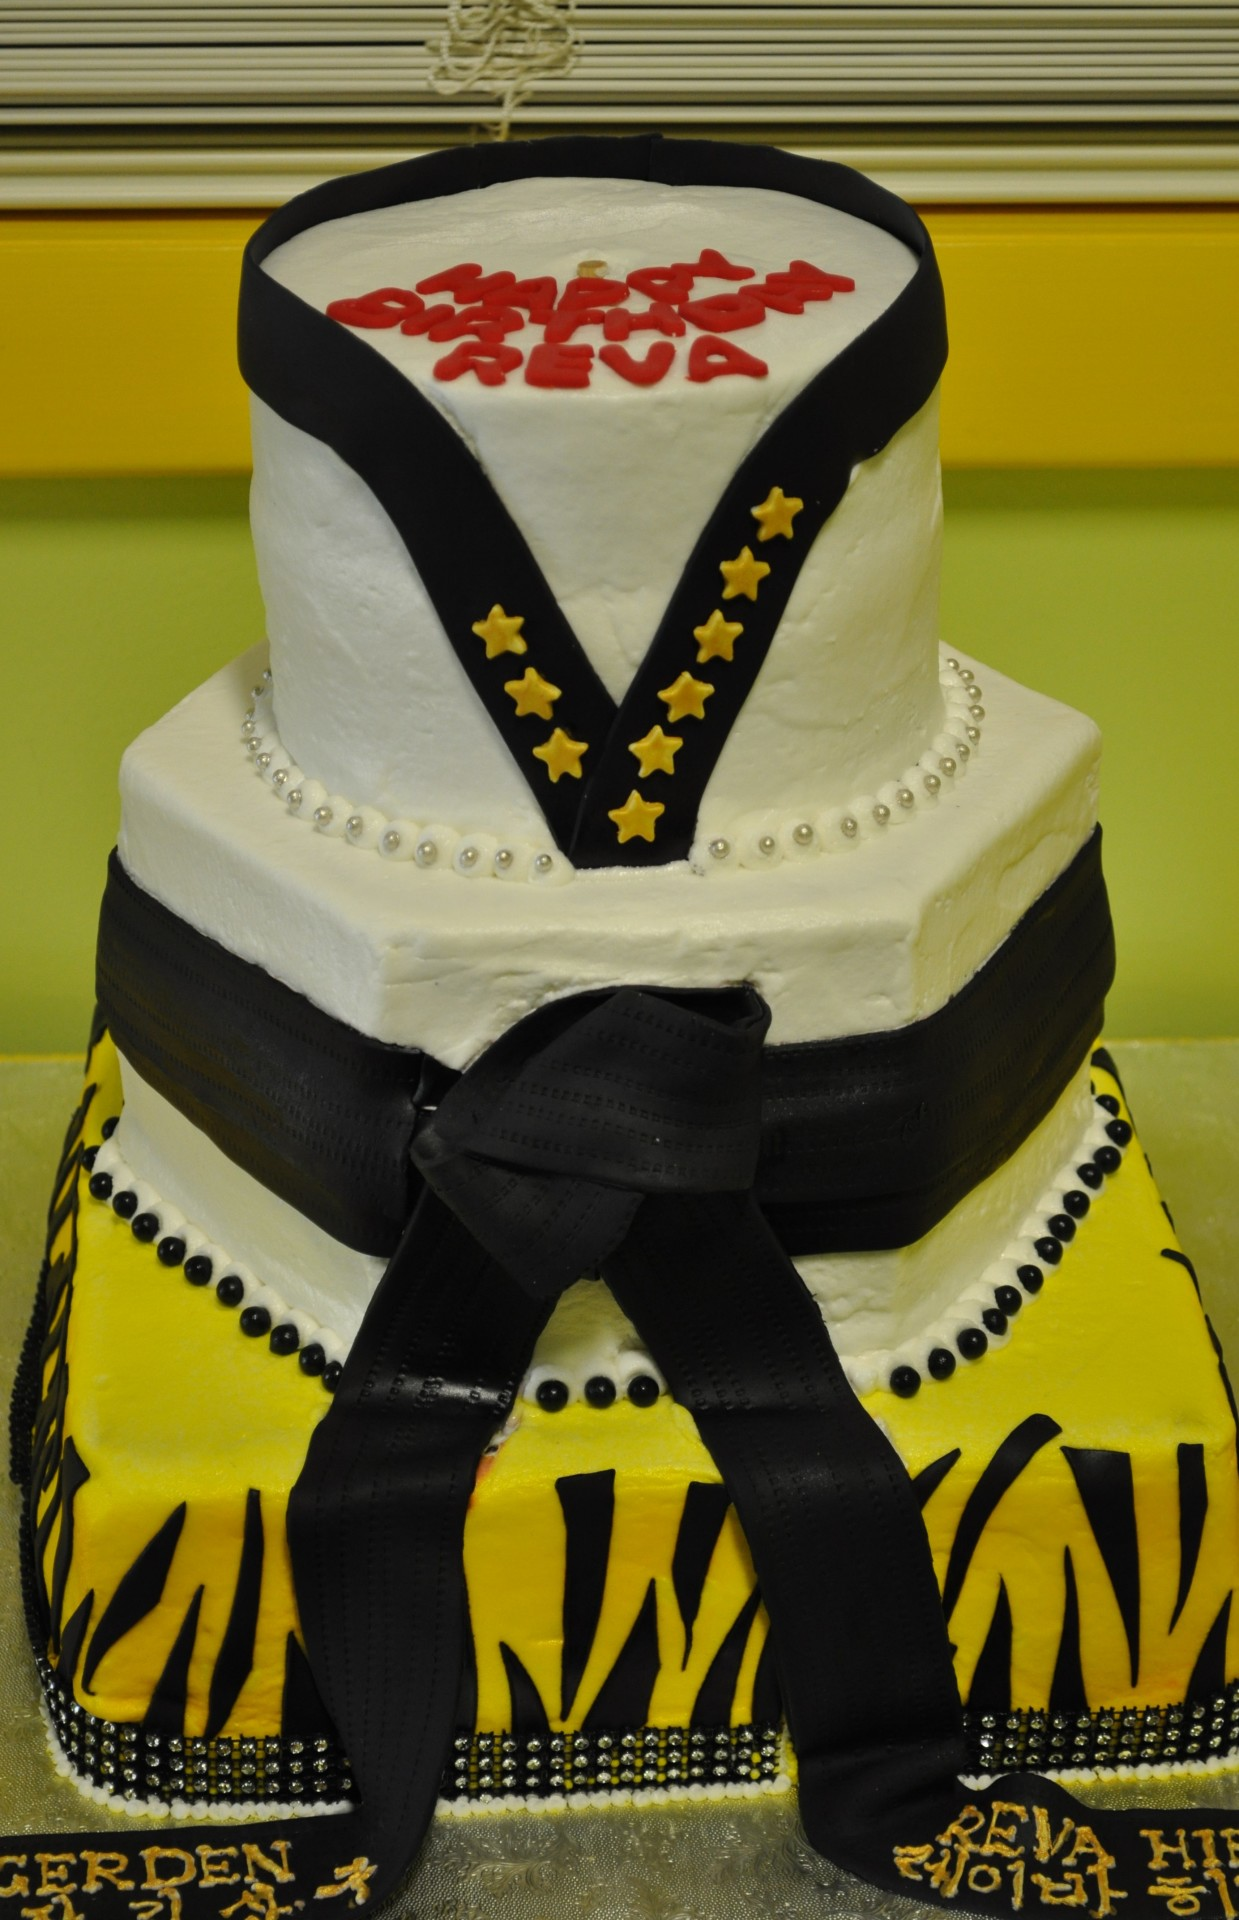 Martial Arts birthday,Tae Kwon Do birthday cake, black belt birthday cake